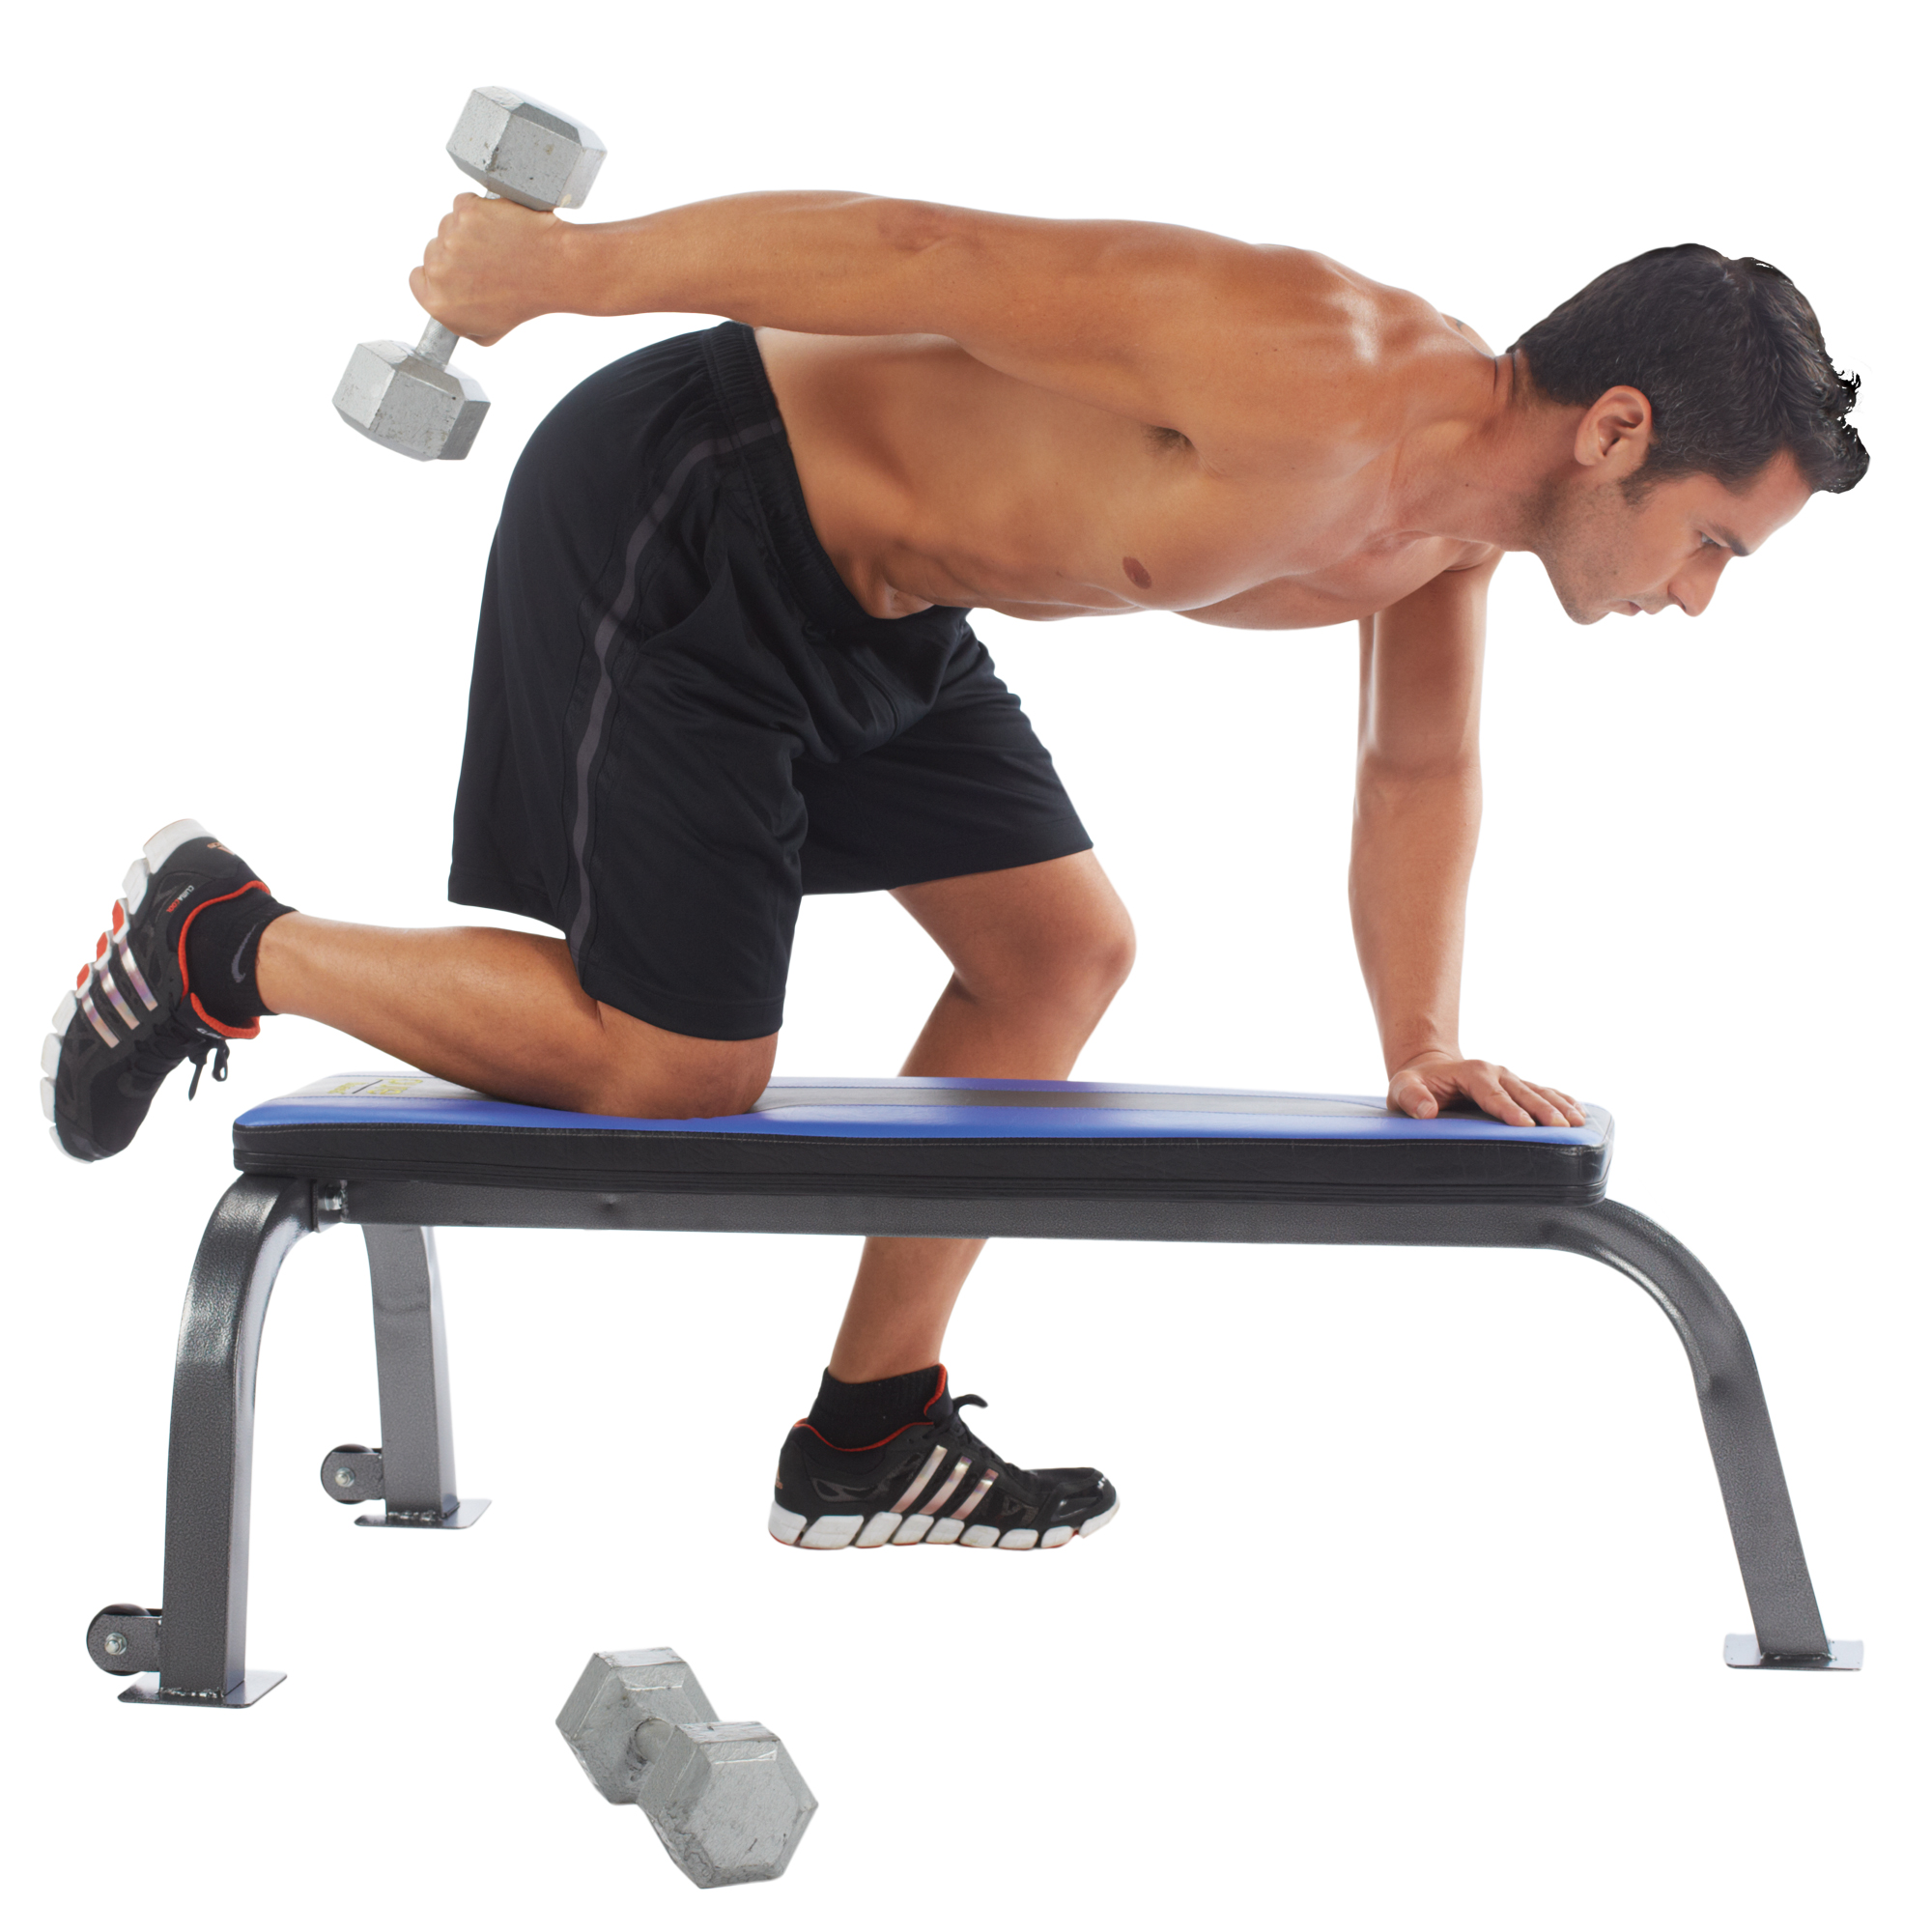 Pure Fitness Flat Bench Workout Bench